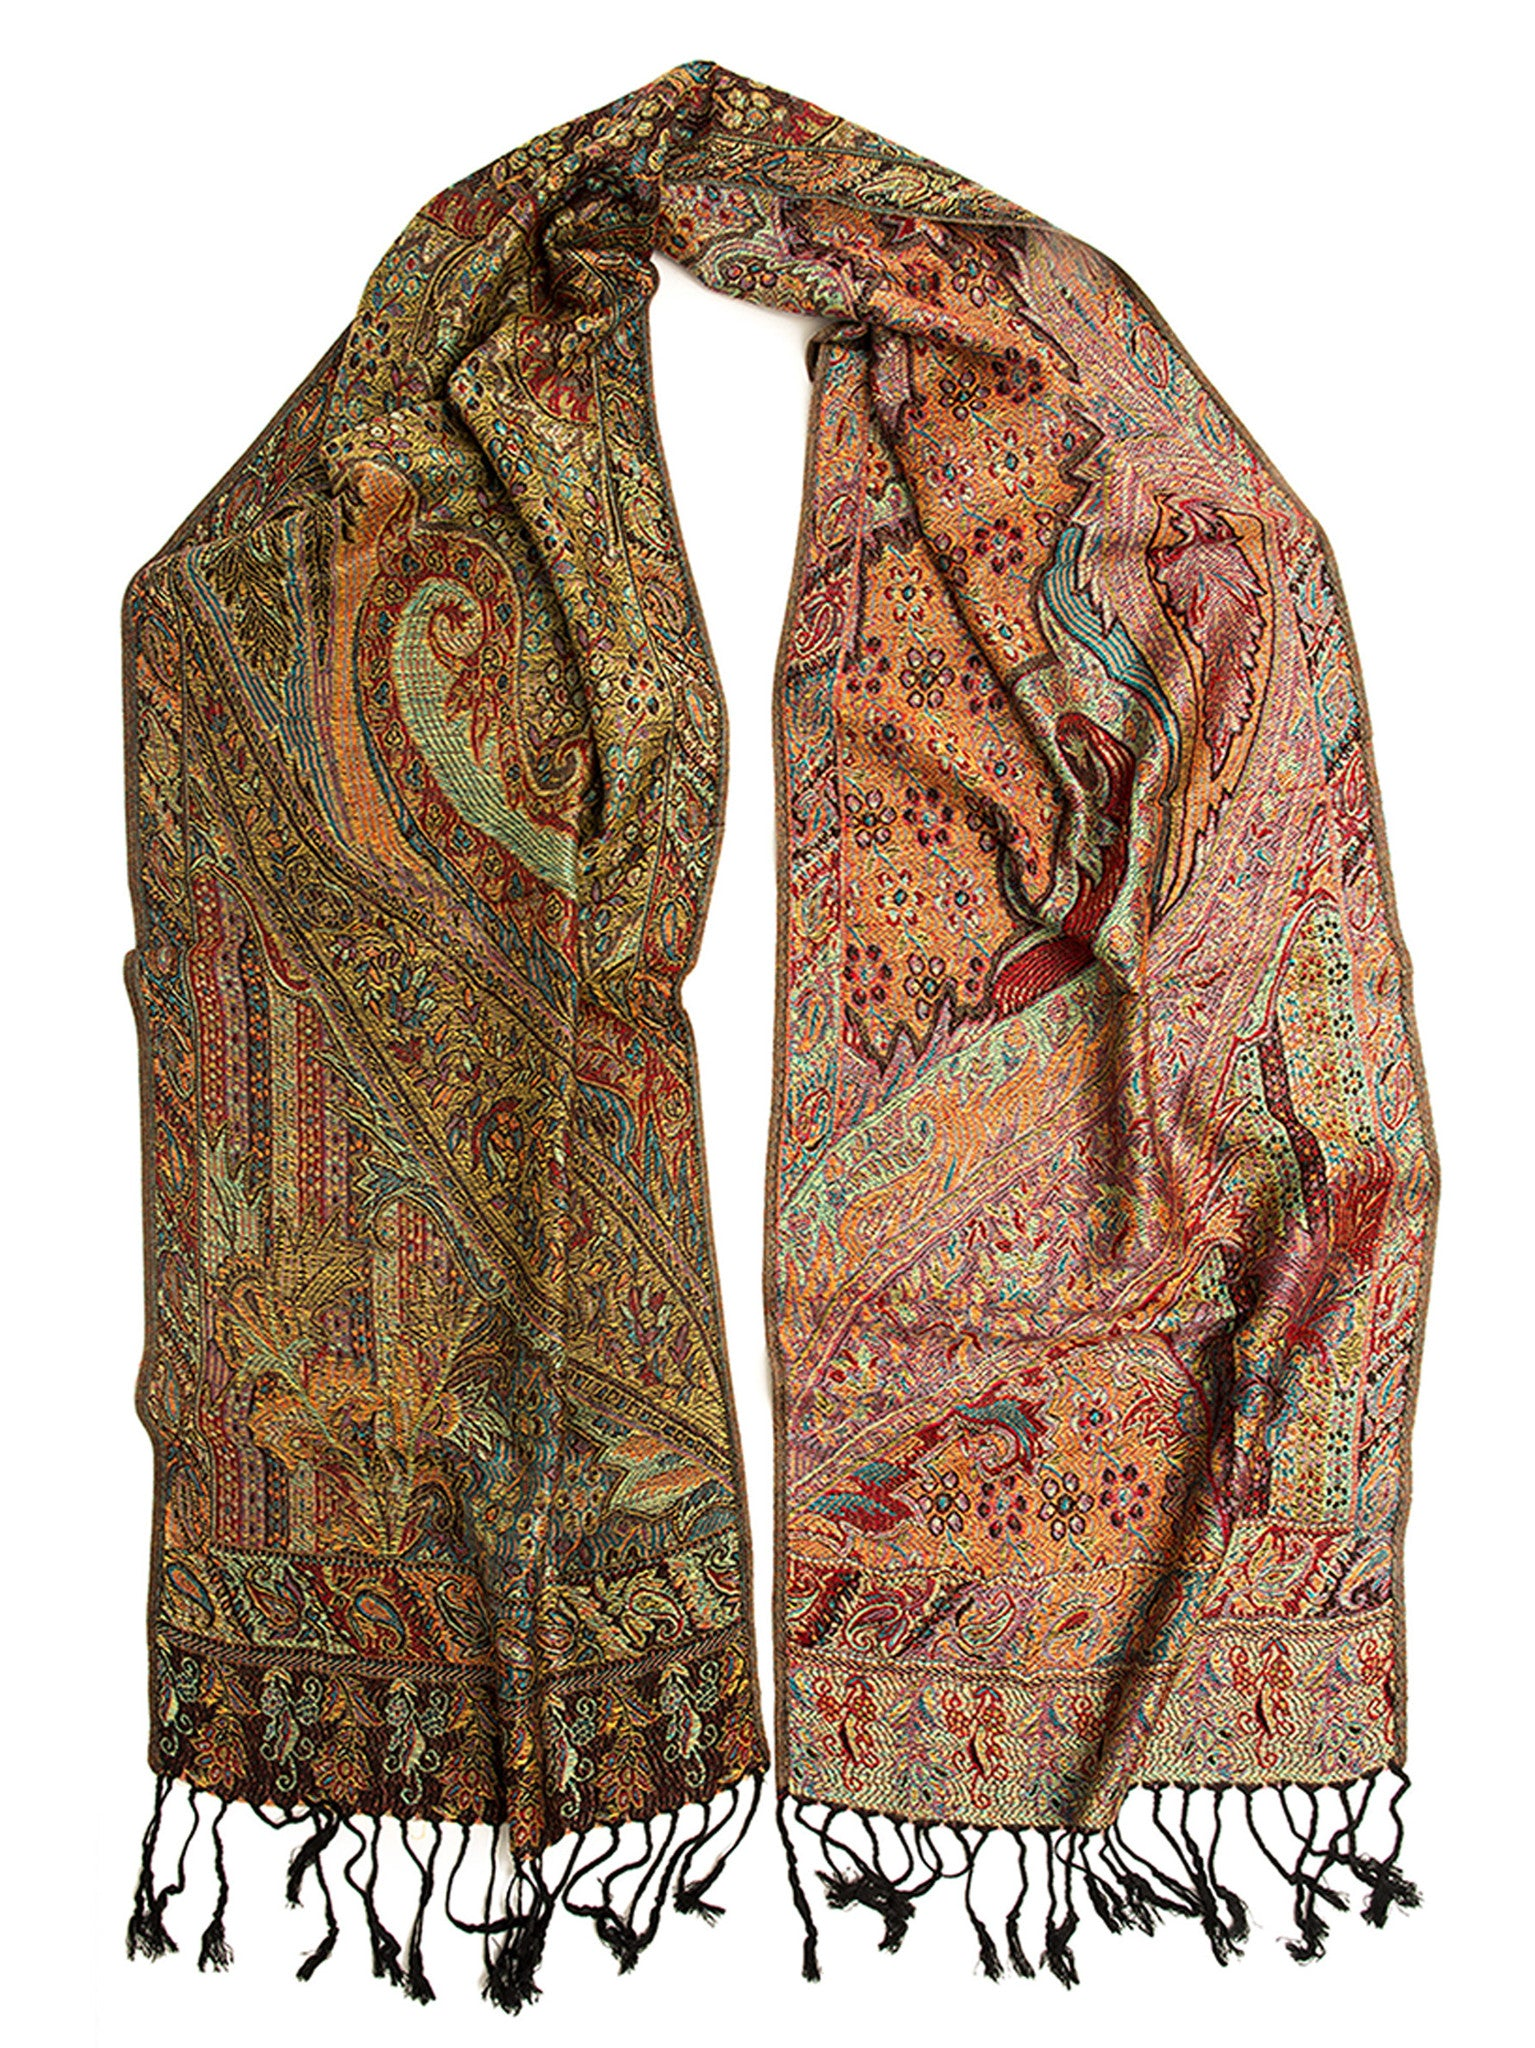 Scarves - Rajana Scarf, Pashmina Indian Paisley Traditional Jacquard Scarf -(Palace / One Size) Bohomonde  - 5